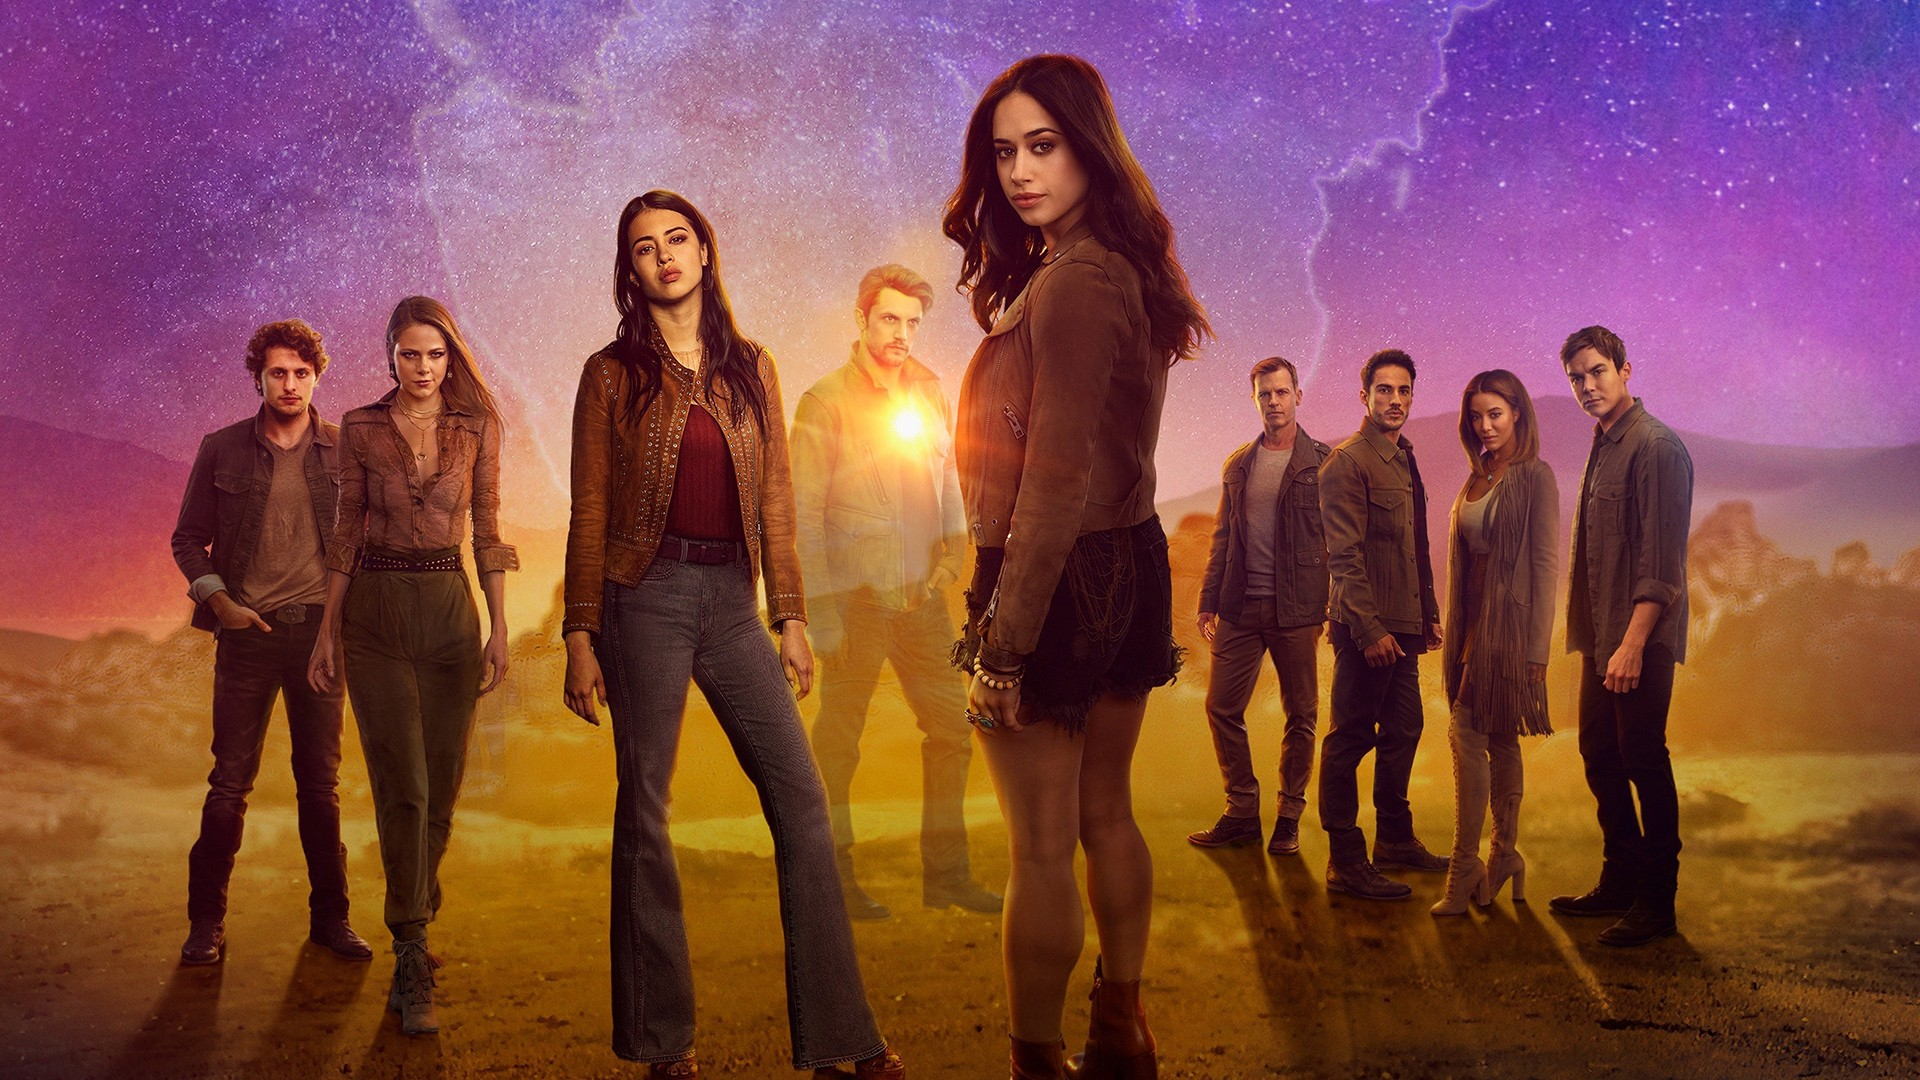 Roswell New Mexico Season 2 Episode 7 Promo Release Date Cast